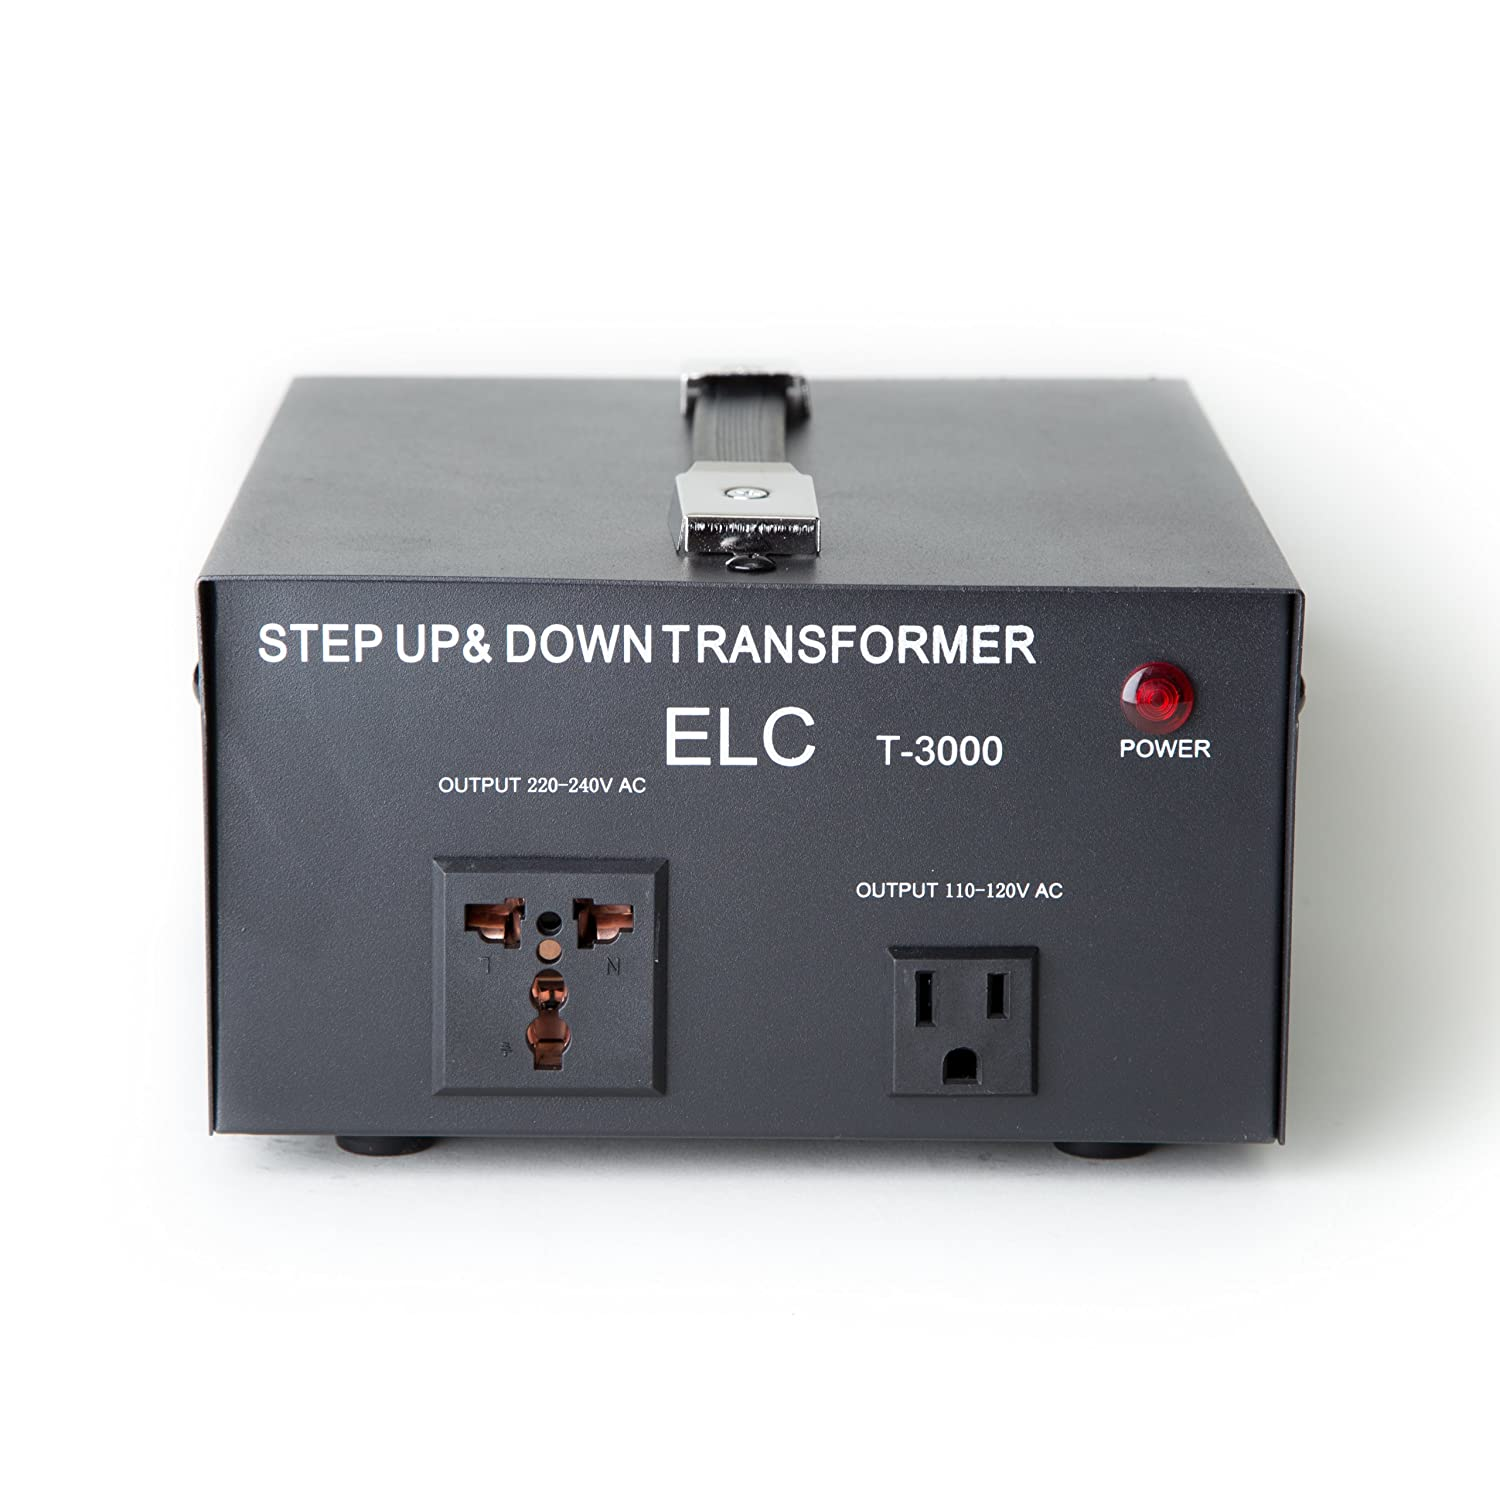 925350 additionally Dc To Dc Ac Inverter Circuit Diagram as well Page 2 likewise 282189299247 as well Convert two level DC voltage 5V  12V 11214. on step up converter 110v 220v